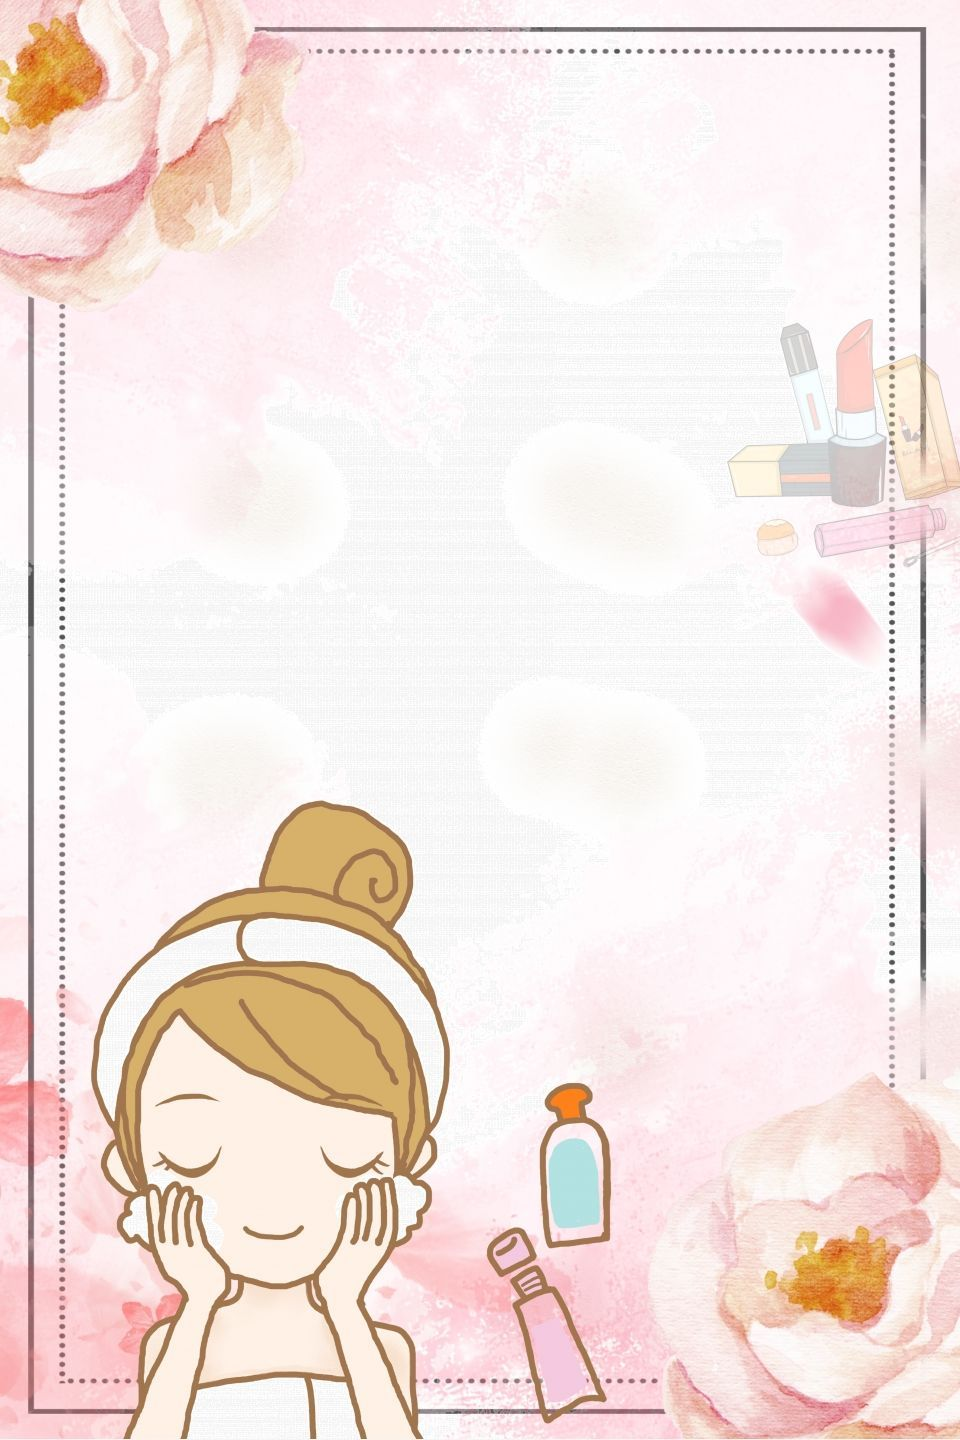 Beauty Skincare Poster Background In 2020 Beauty Posters Beauty Salon Posters Cute Wallpapers